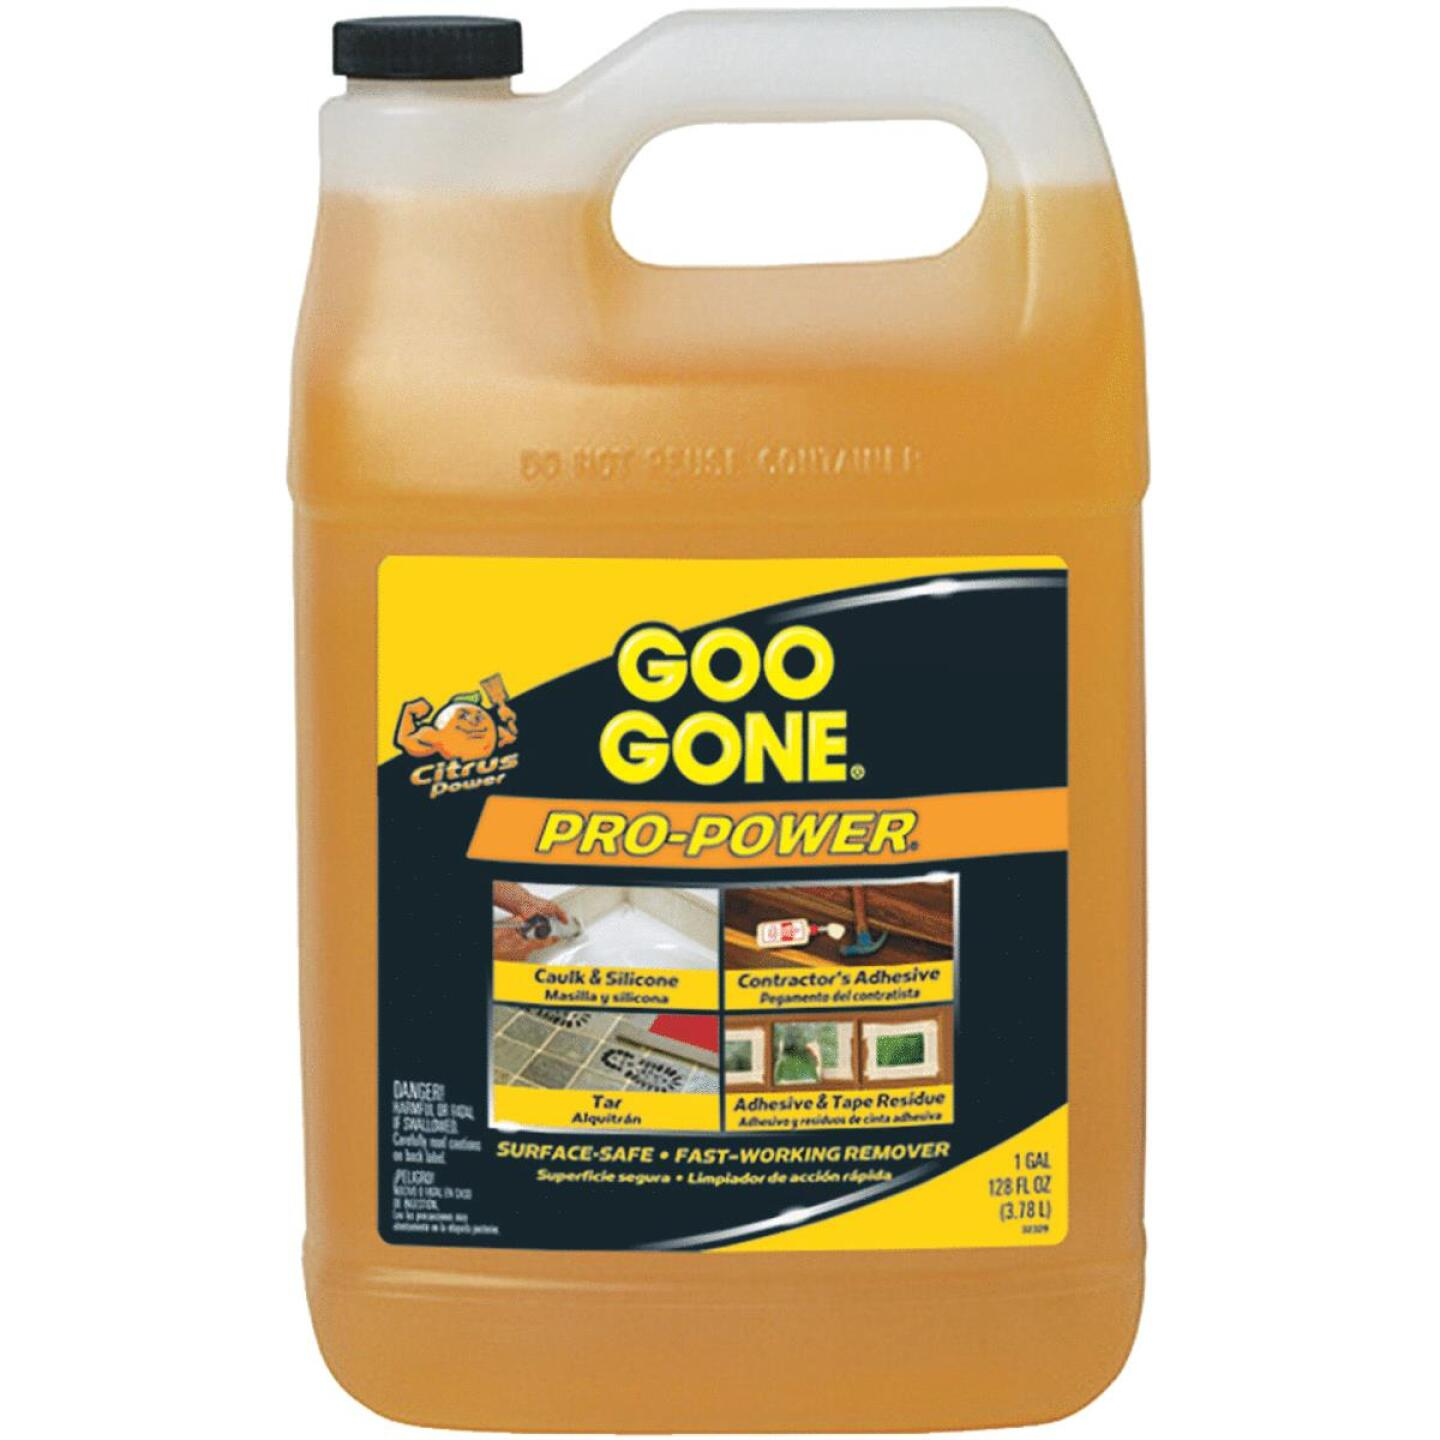 Goo Gone 1 Gal. Pro-Power Adhesive Remover Image 120